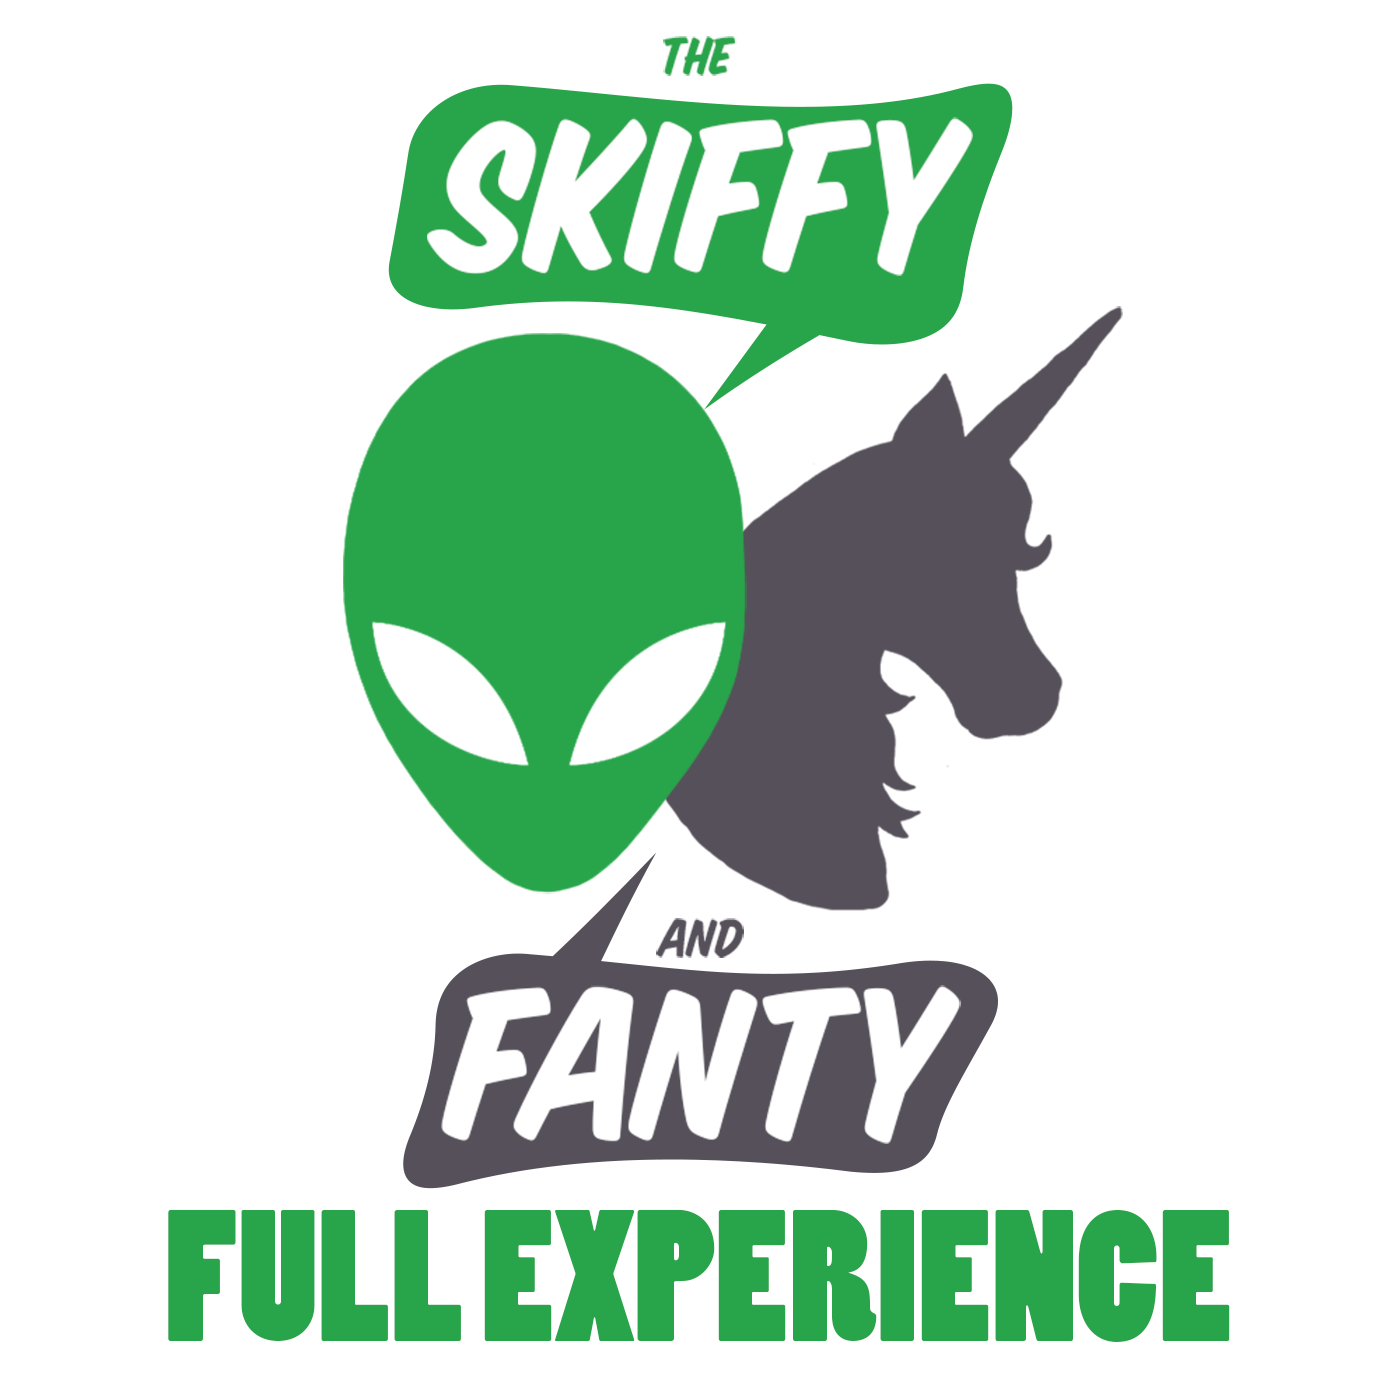 The Skiffy and Fanty Show: The S&F Full Experience